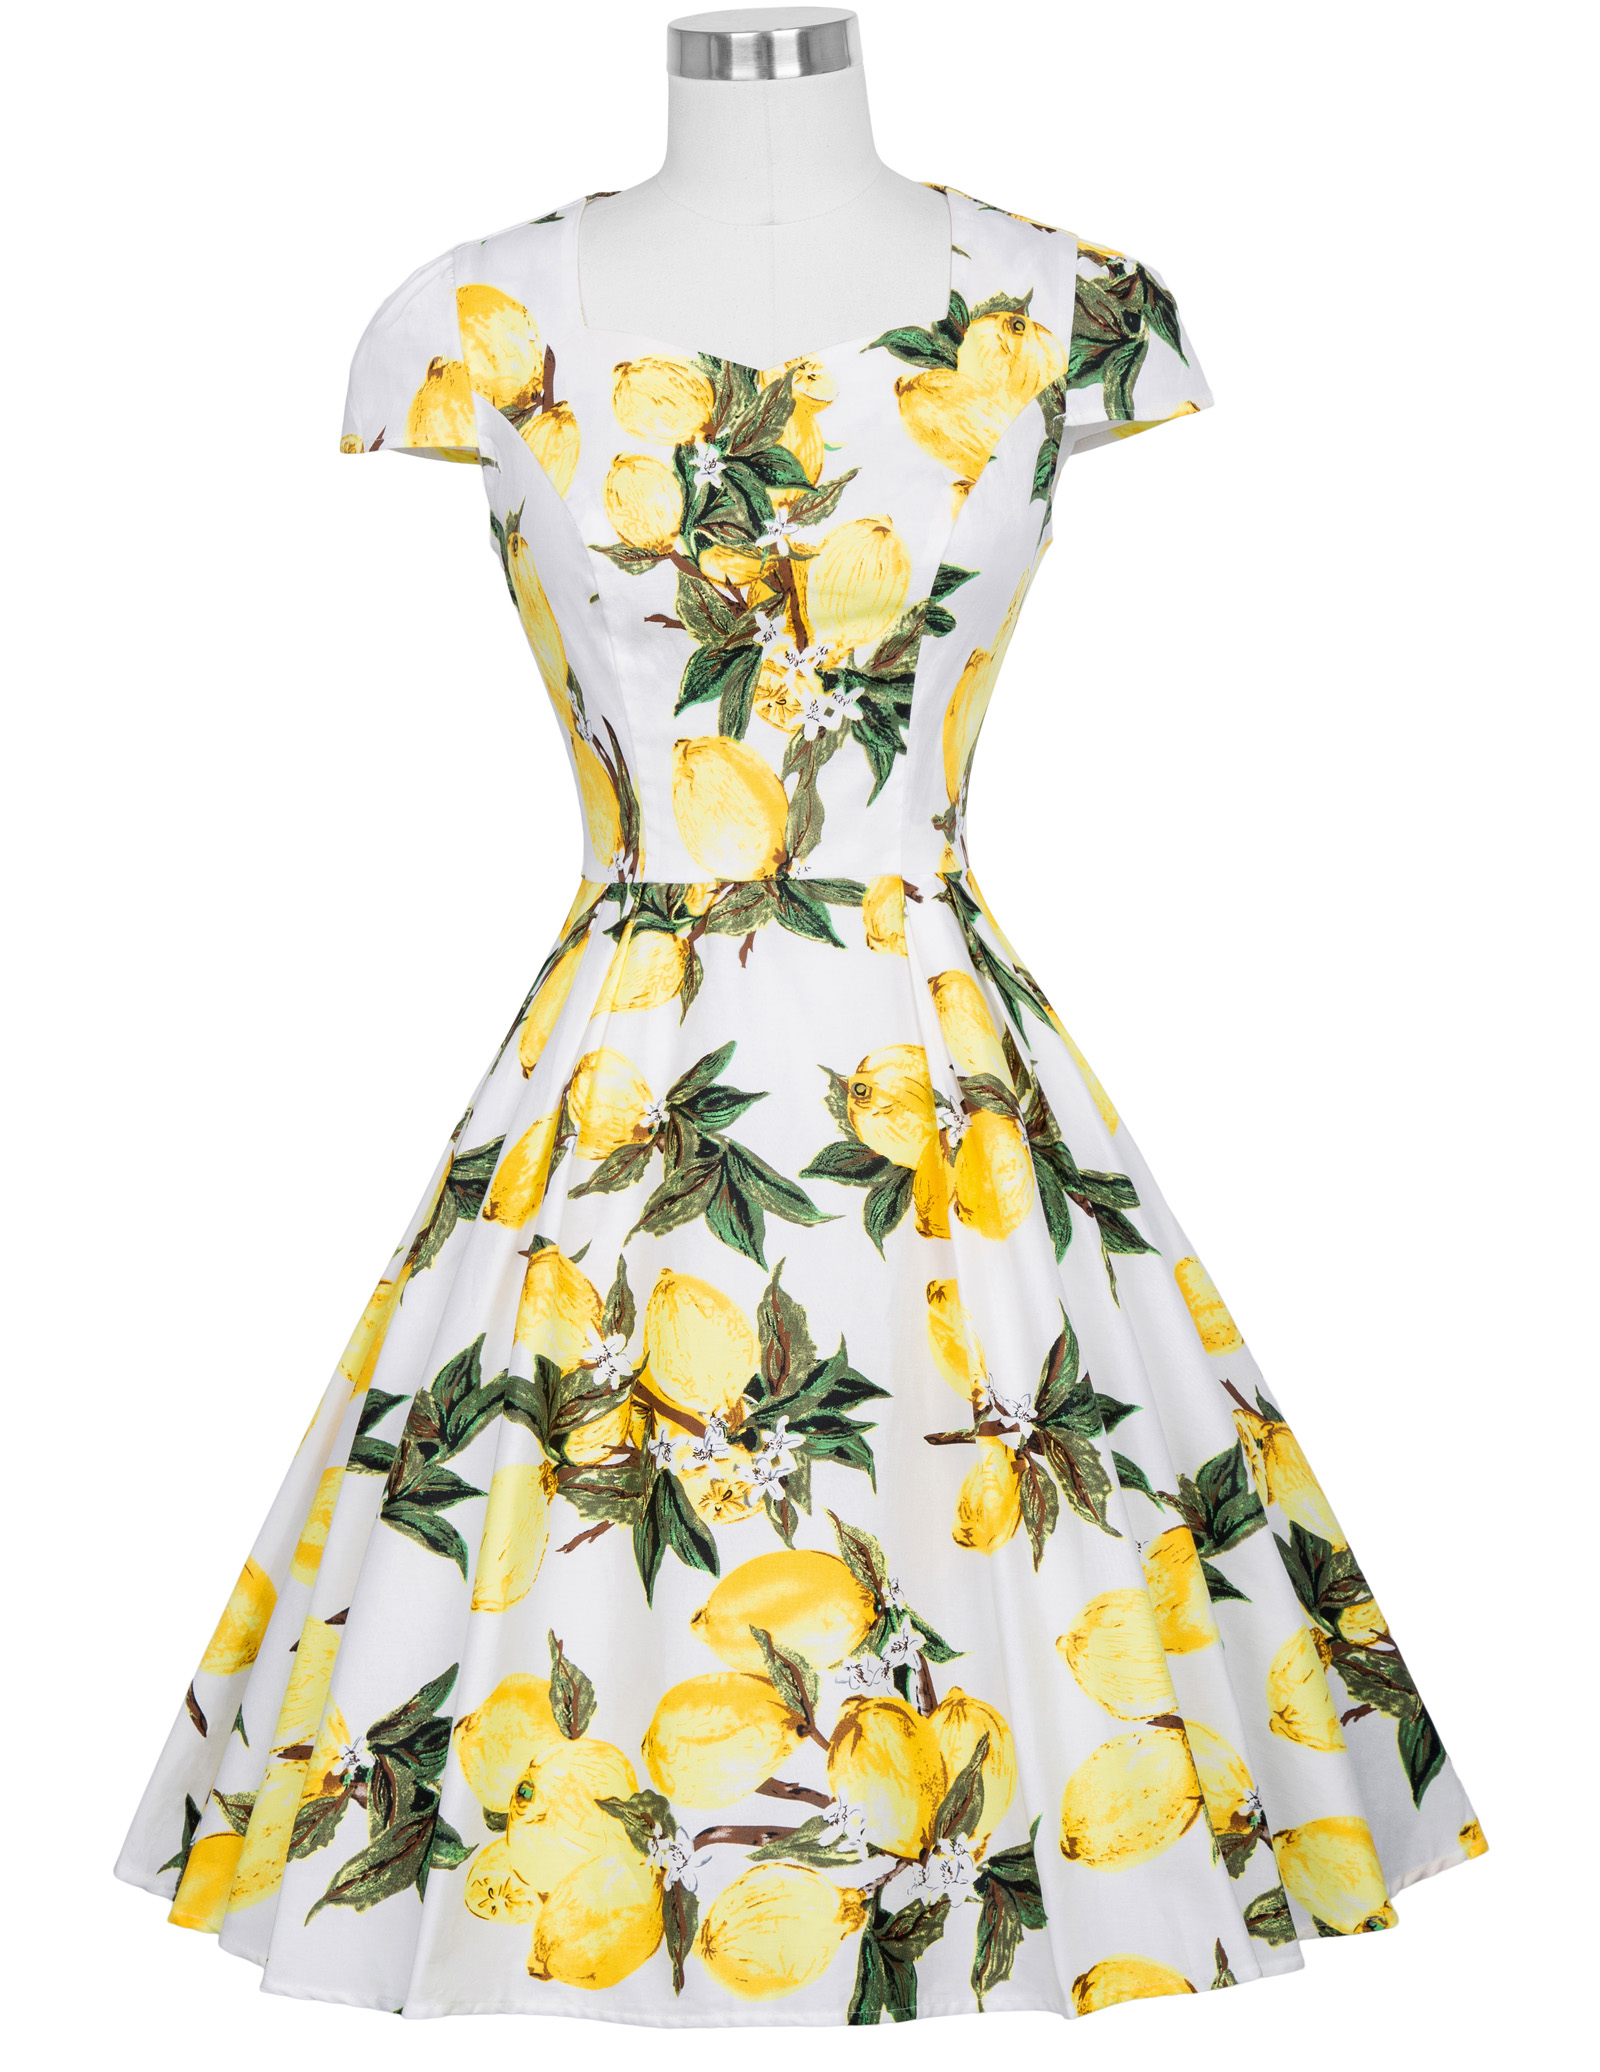 2018 Flower Summer Women Dress Vintage Cap Sleeve Floral 1950s Flare A-Line Party Jurken Audrey Hepburn 50s 60s Vintage Dress